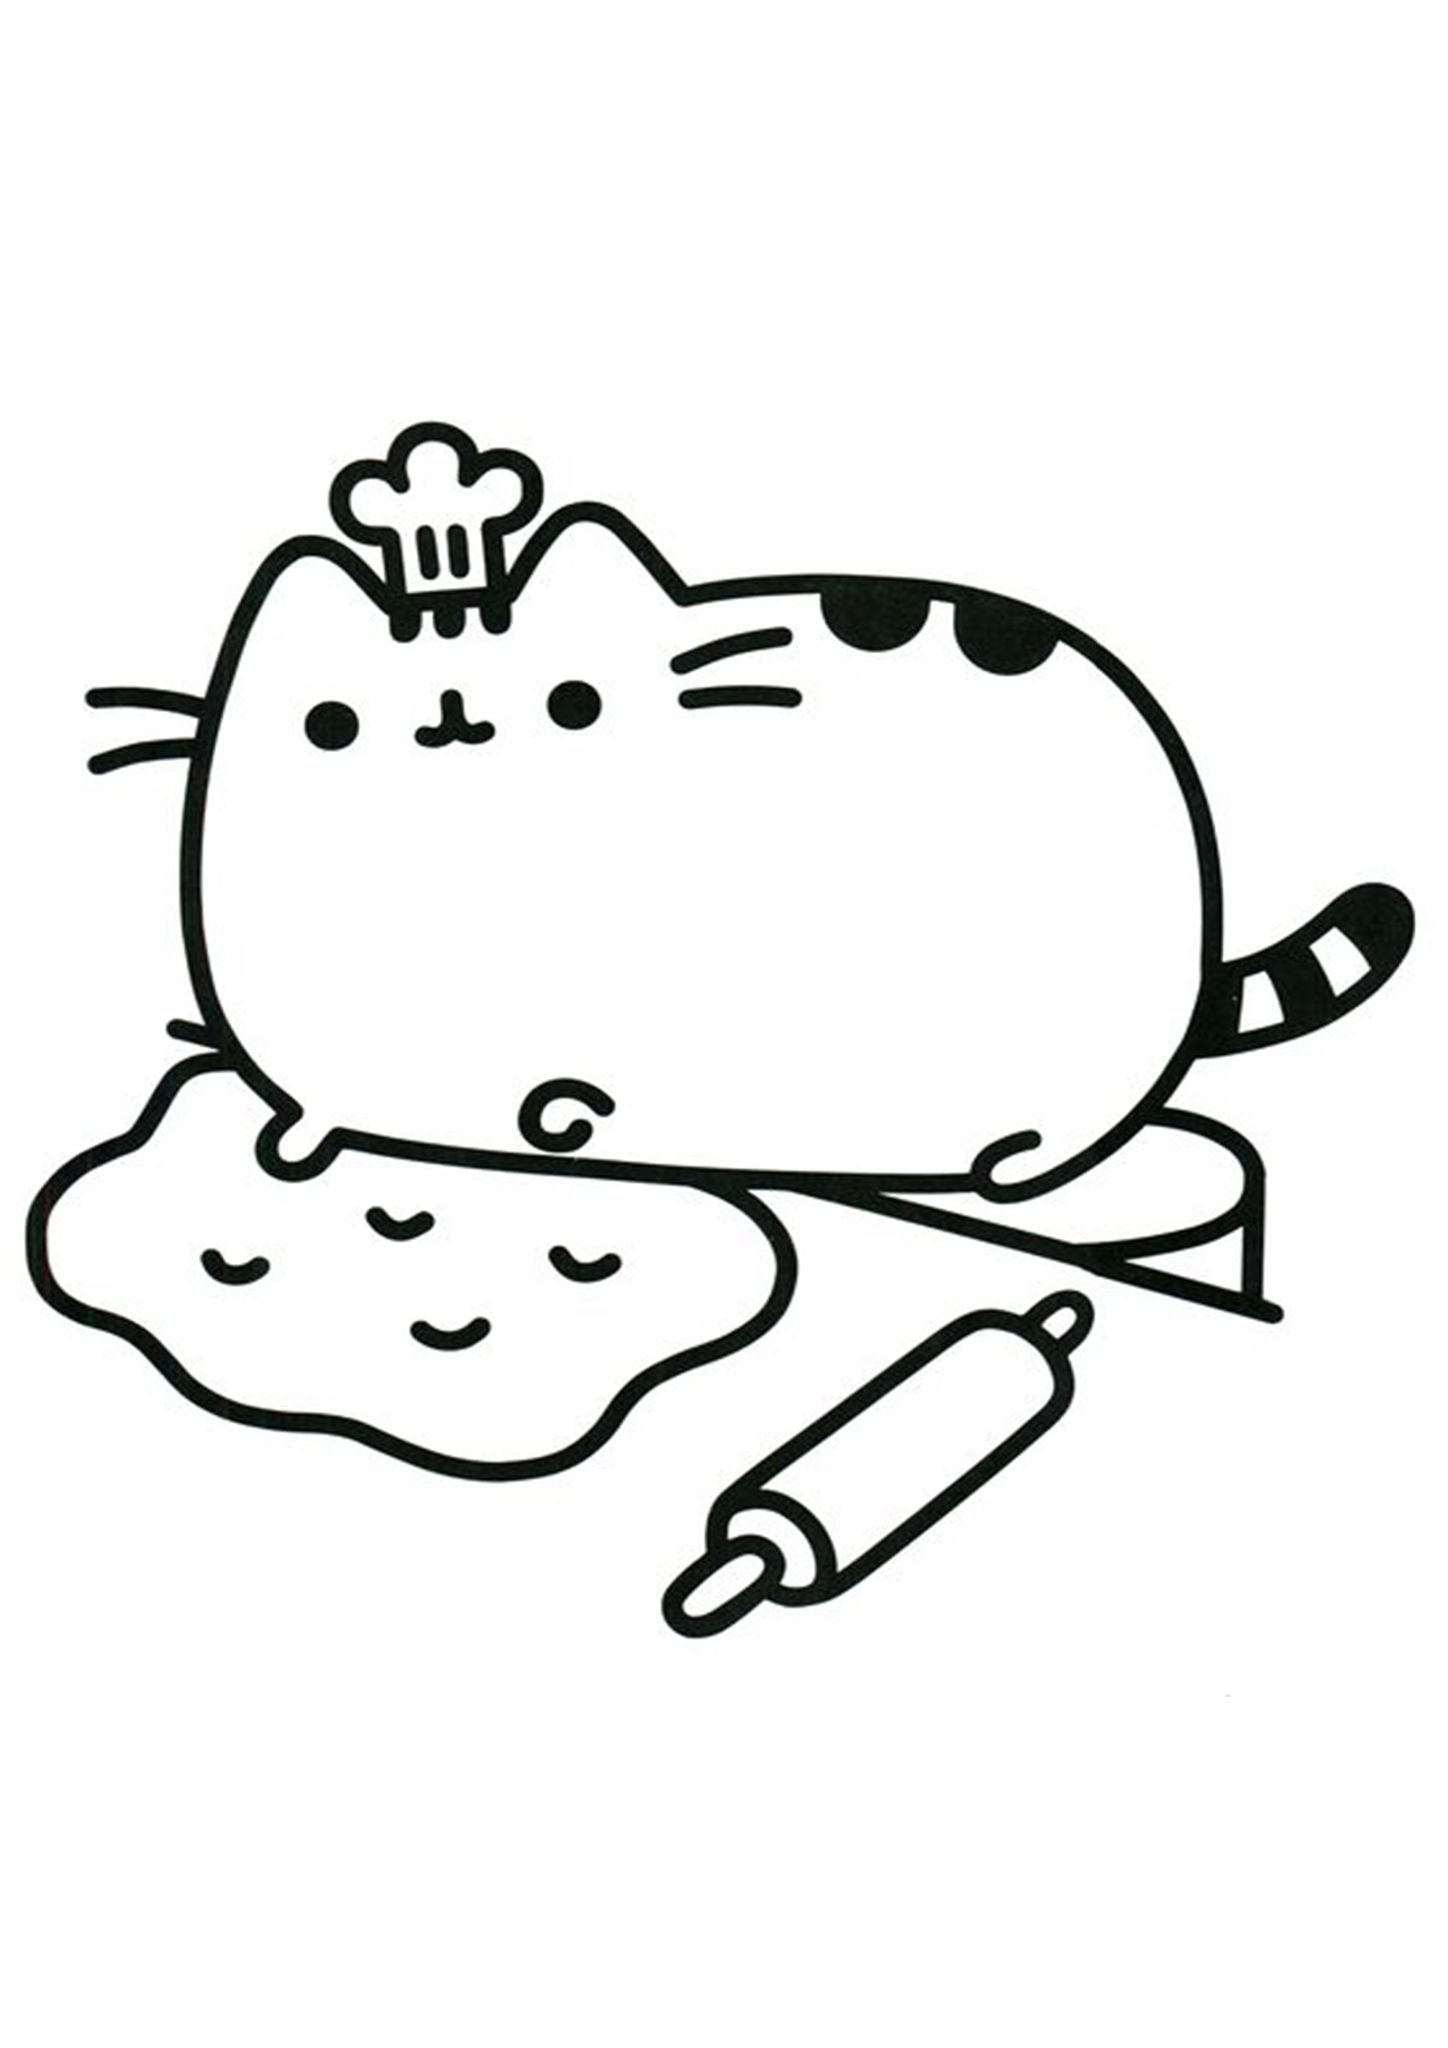 Free Easy To Print Pusheen Coloring Pages Pusheen Coloring Pages Cat Coloring Page Kids Printable Coloring Pages